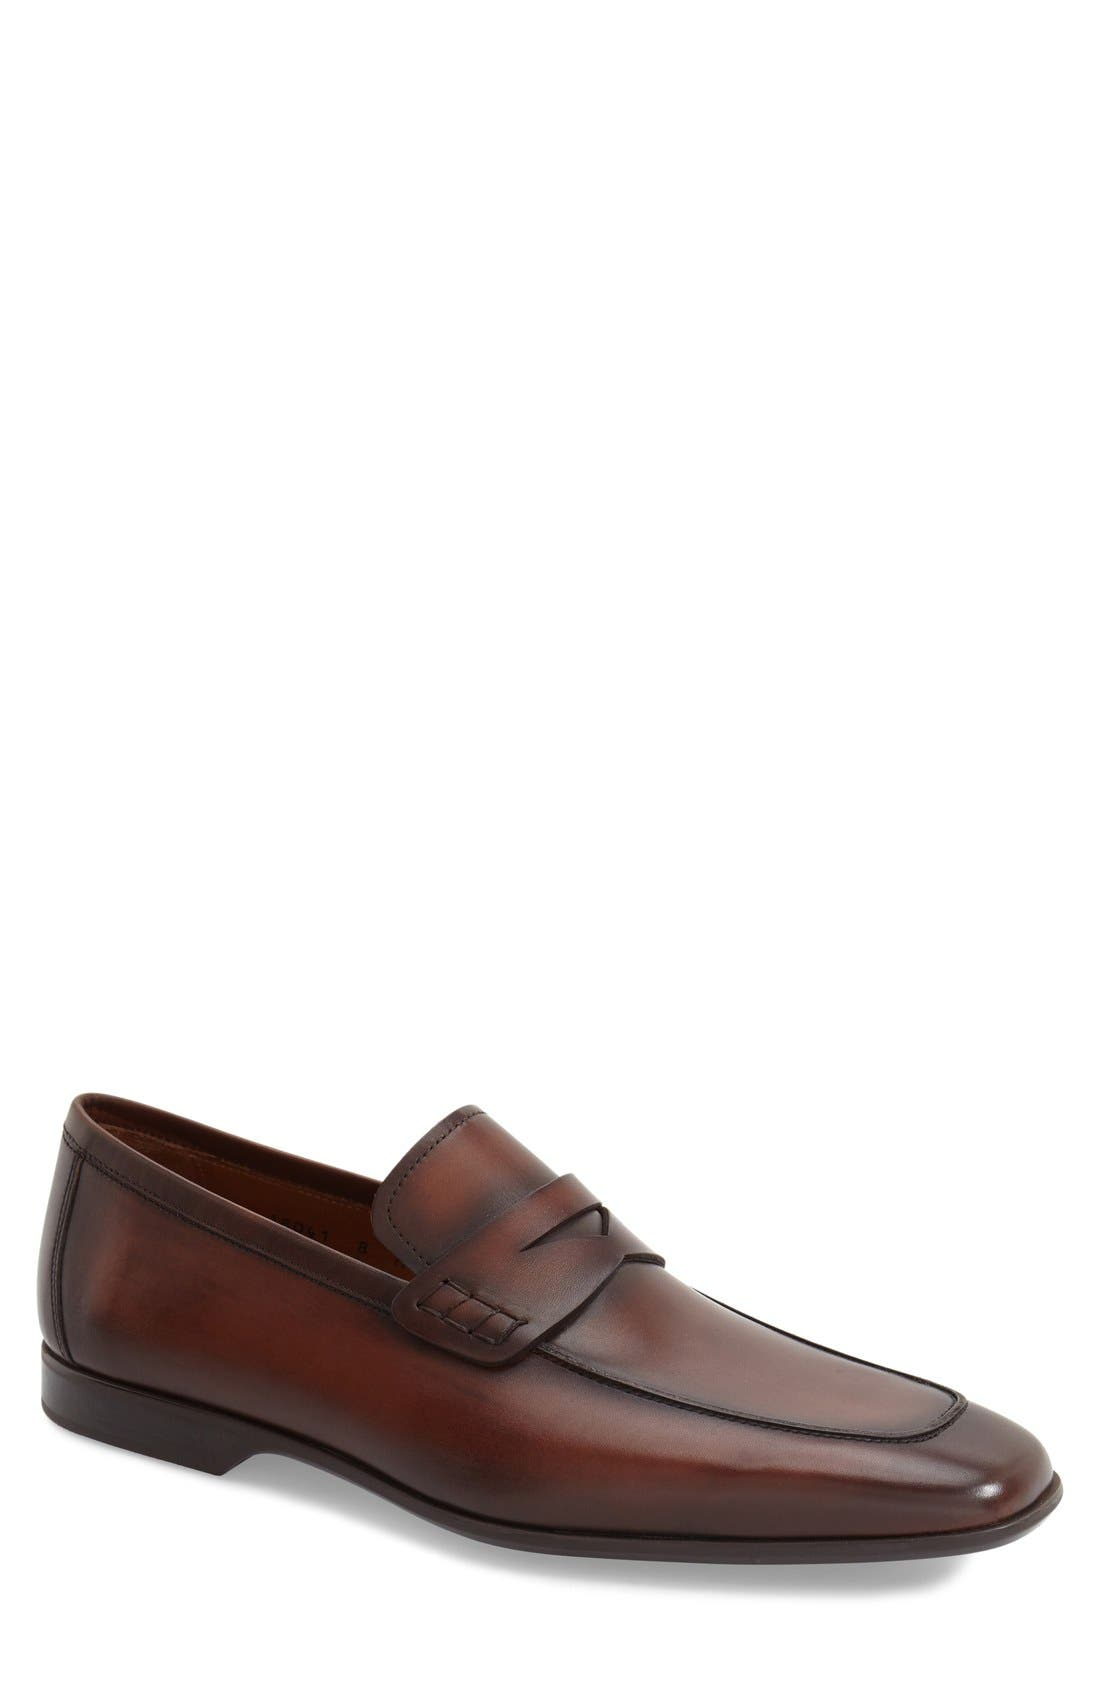 Main Image - Magnanni 'Ramiro II' Penny Loafer (Men)